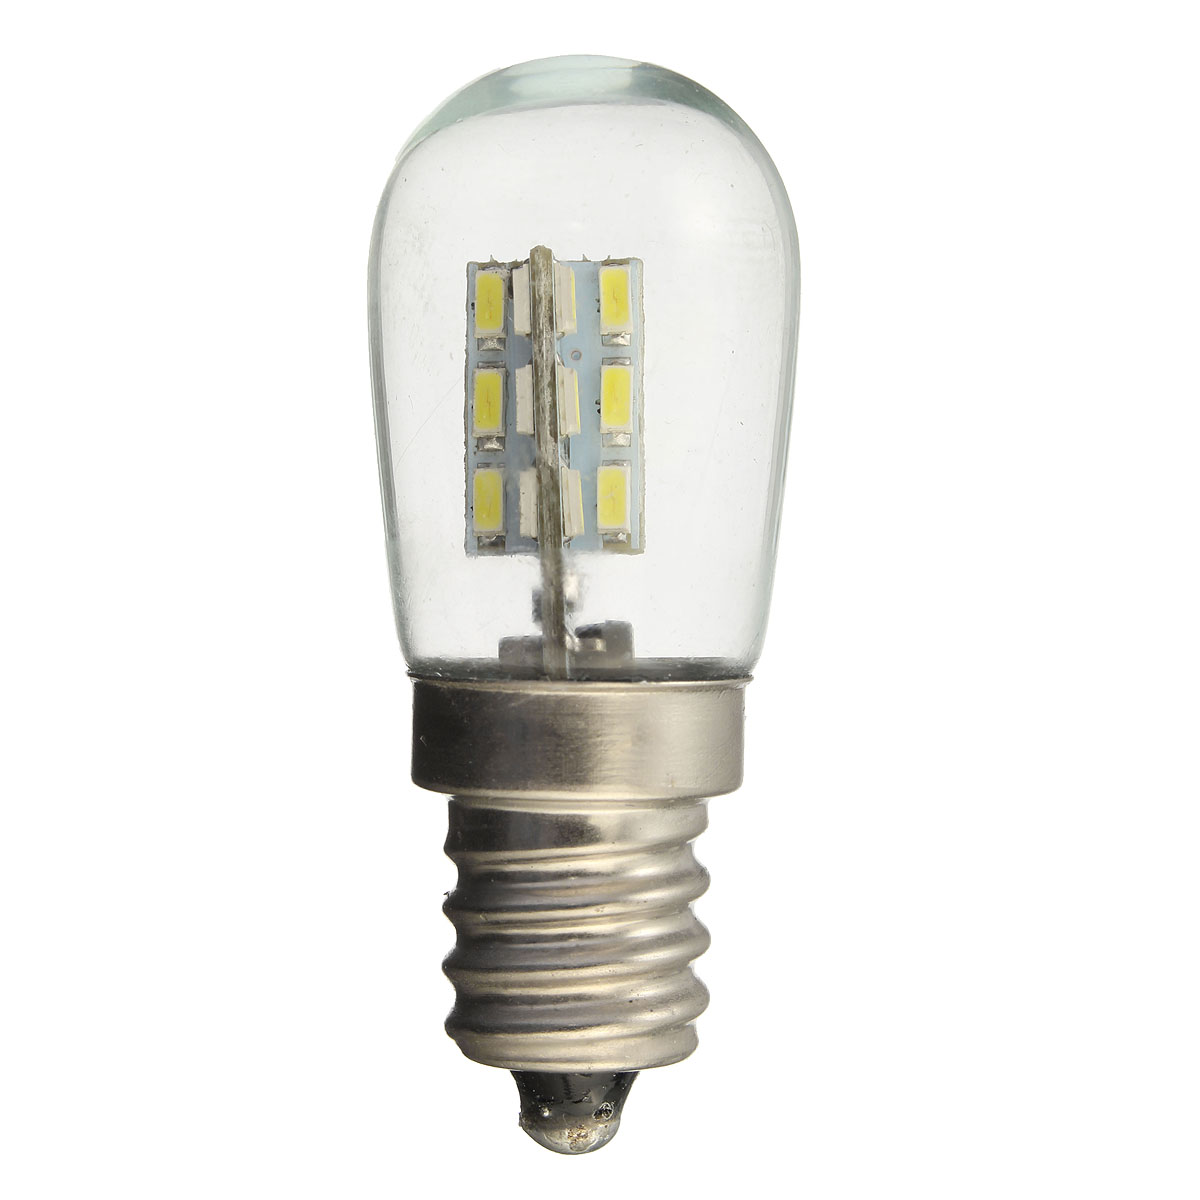 E12 2W 24 SMD 3014 LED Pure White Warm White Bed Lamp Light Bulb AC220V